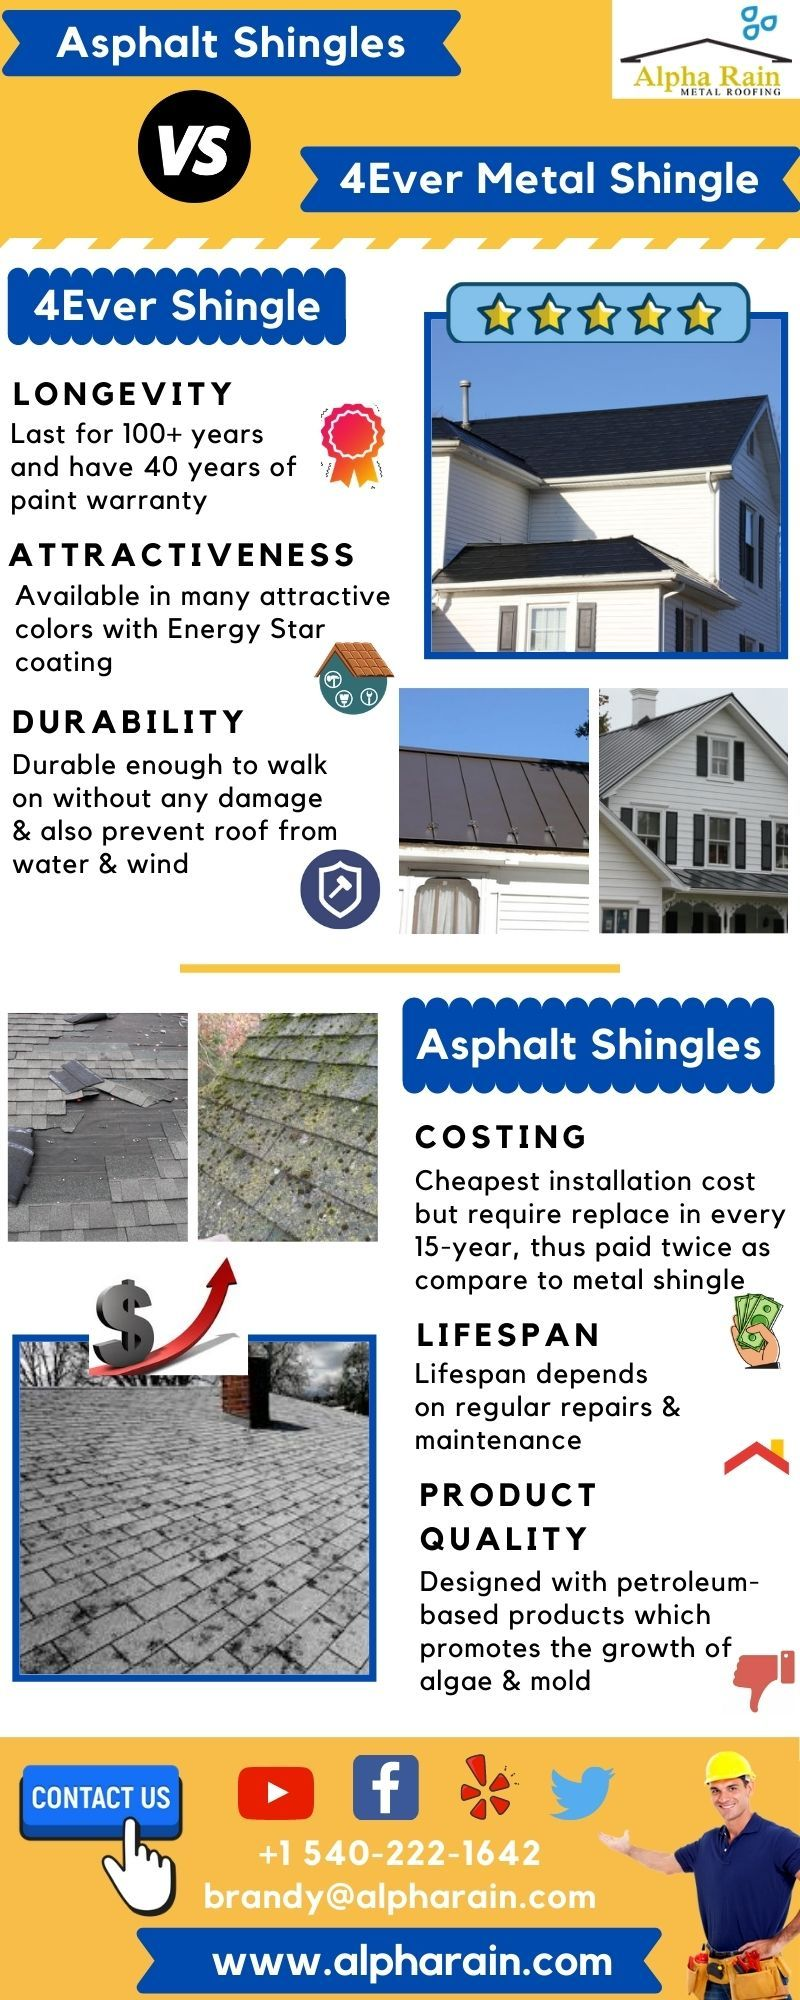 Compare Cost Of Different Asphalt Roof With Metal Shingles In 2020 Metal Shingles Shingling Asphalt Shingles